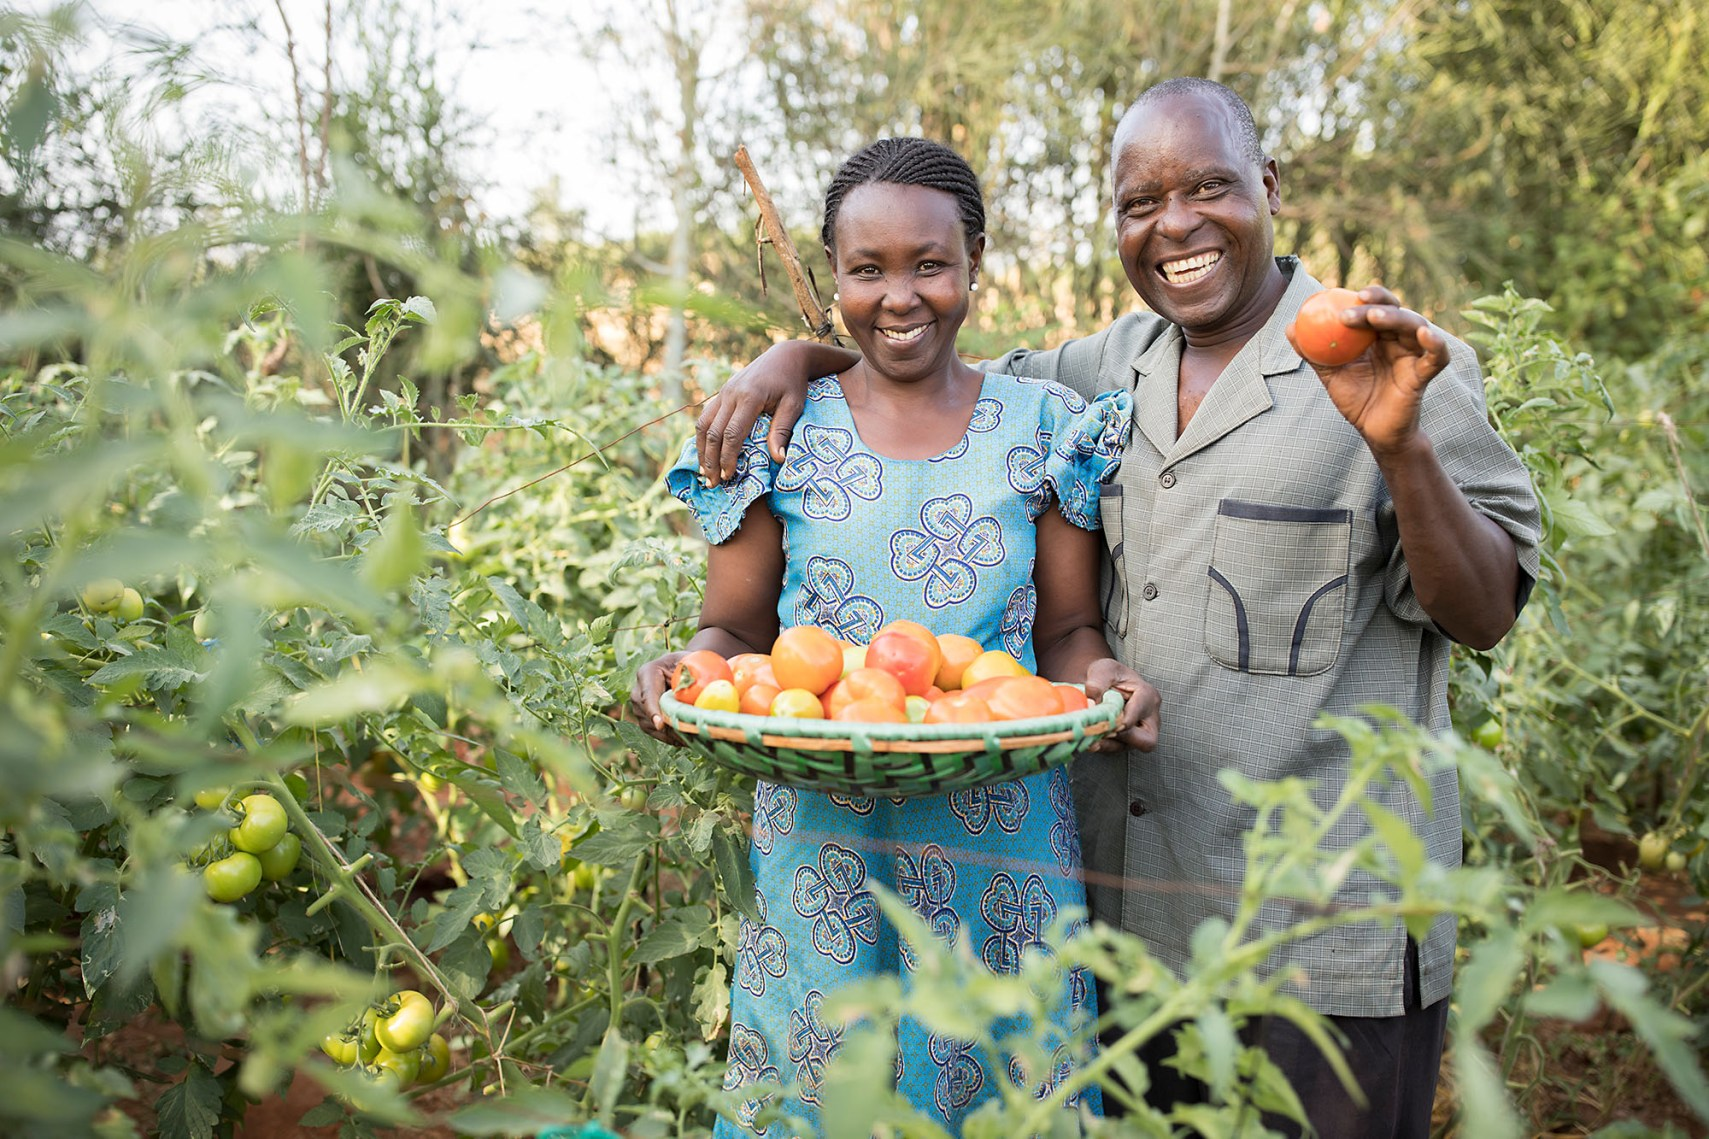 Agnes Nduku (46) and her husband Alfonse Nzuki (53) hold freshly harvested tomatoes on their family's small farm in Makueni County, Kenya.